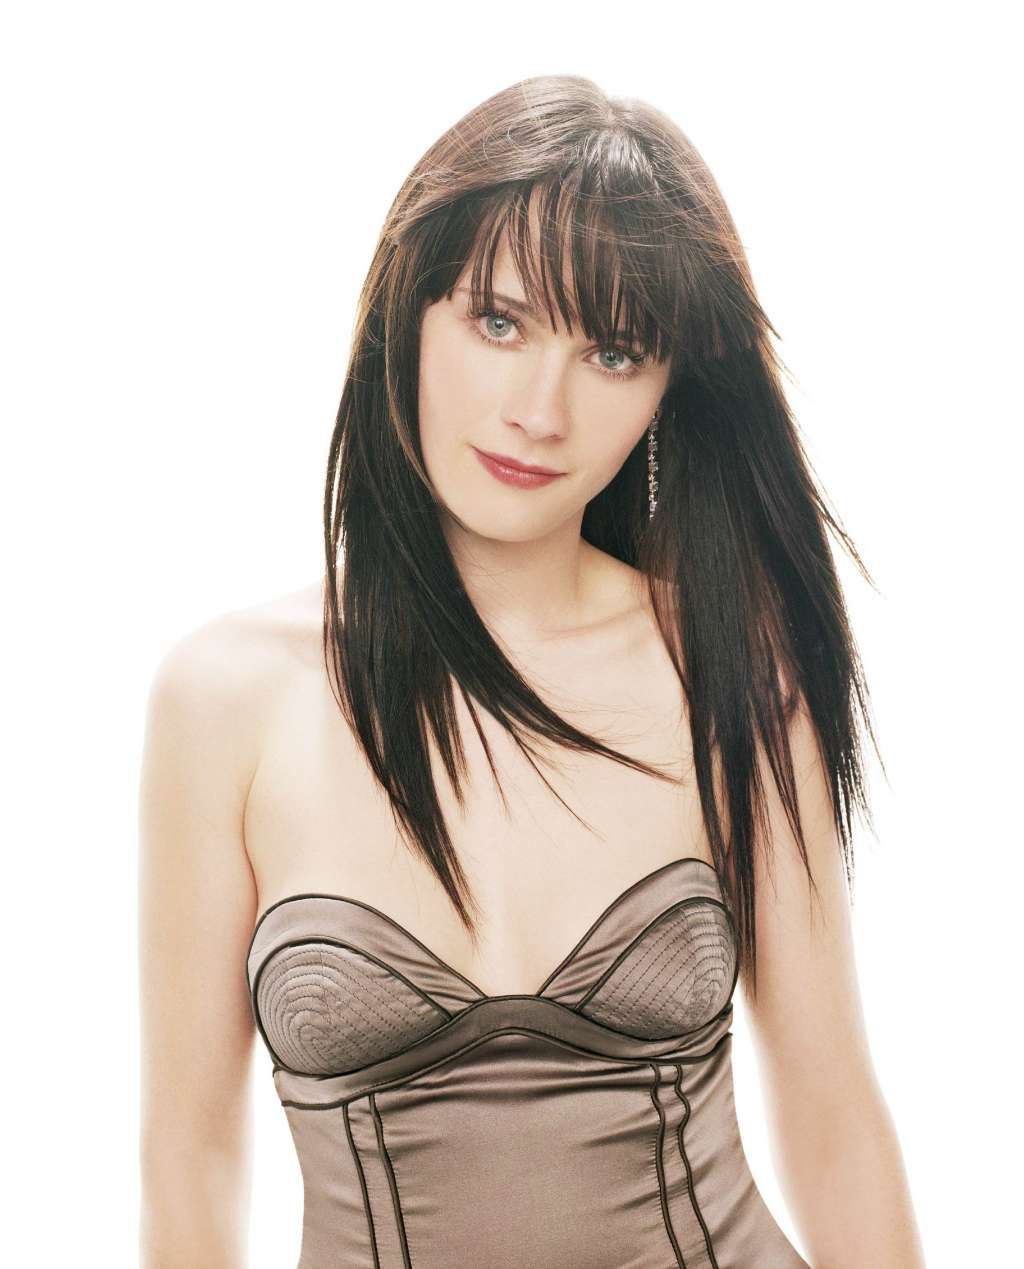 The 36 Sexiest Zooey Deschanel Pics of All Time